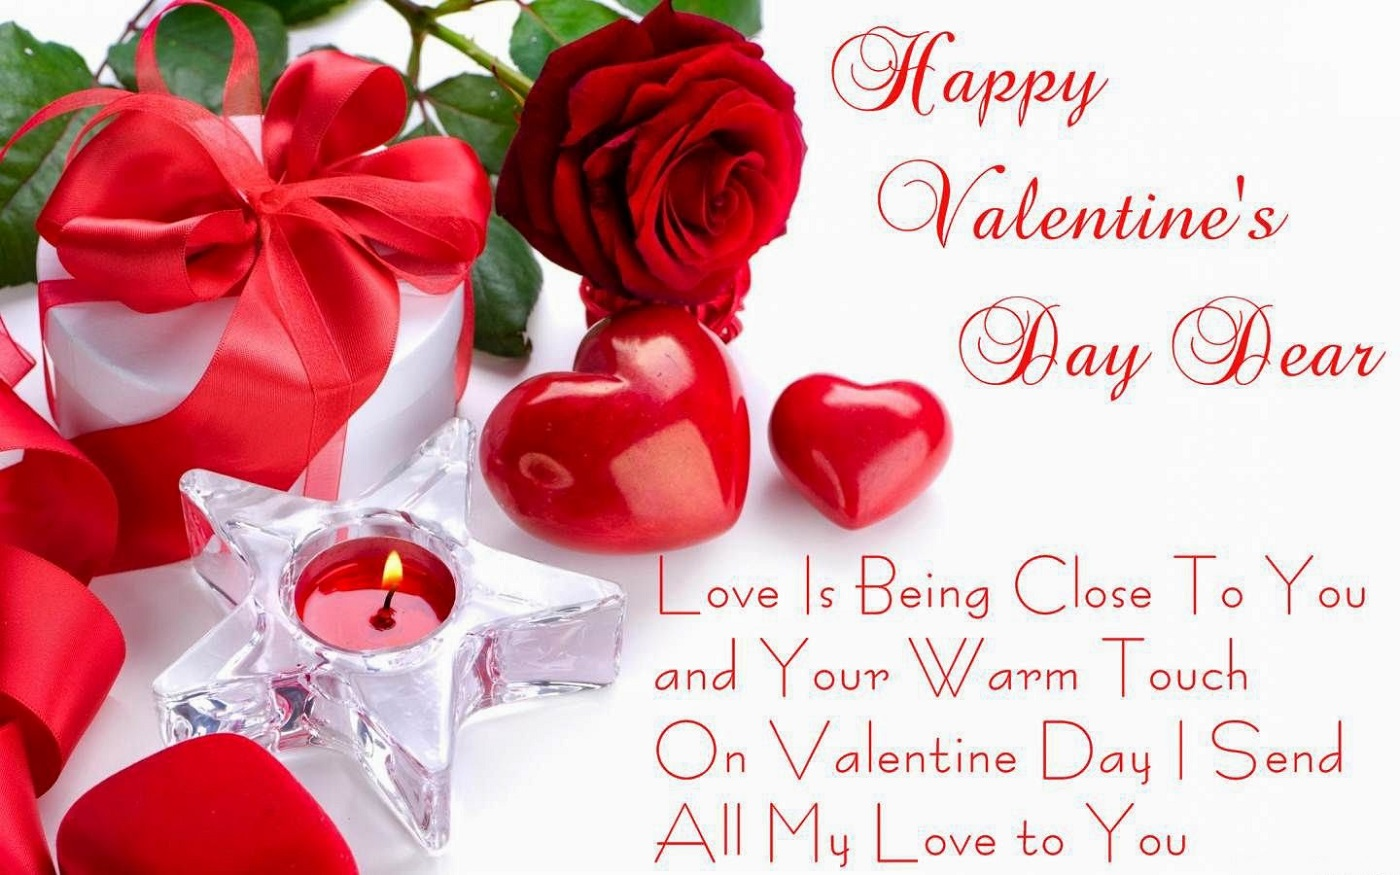 Happy Valentines Day Quotes For Husband ""